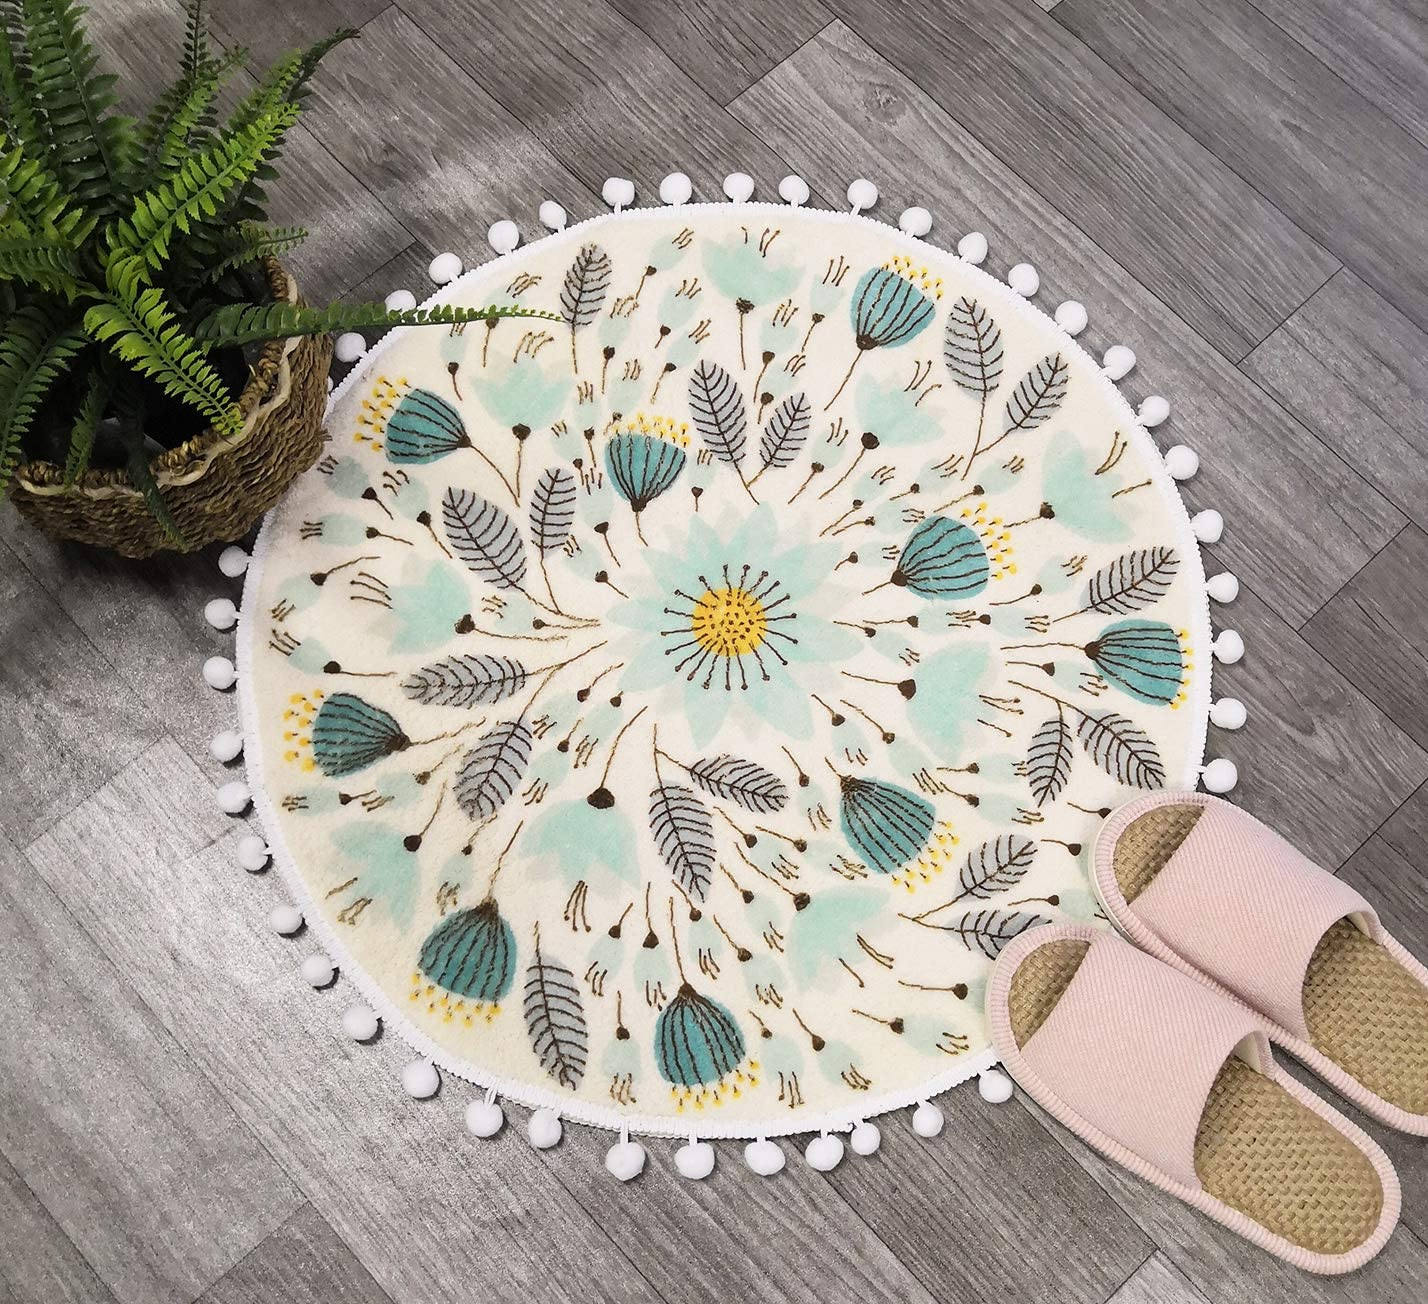 Amazon Com Uphome Round Small Area Rug 2ft With Chic Pom Pom Fringe Floral Velvet Bathroom Rugs Field Plants Non Slip Soft Floor Throw Rug Machine Washable For Living Room Bedroom Decor Kitchen Dining